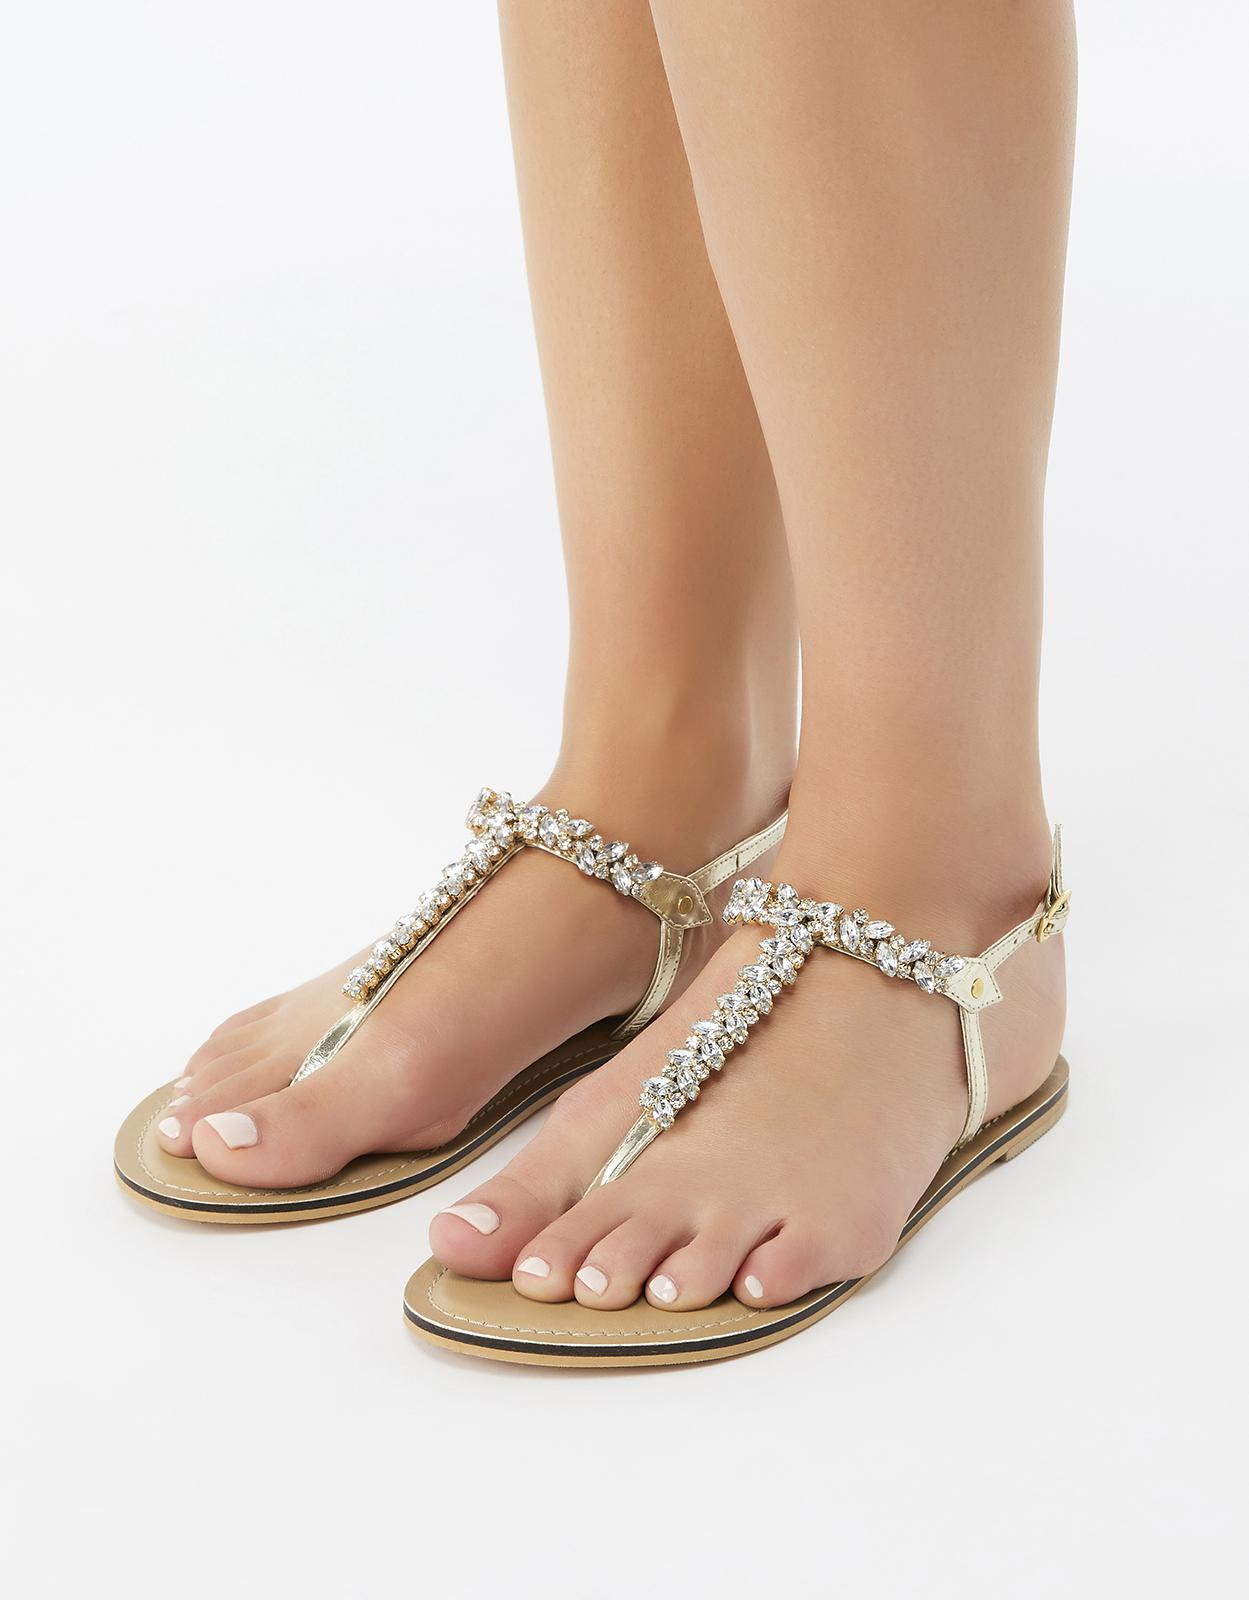 b06e8a96c65f15 Accessorize Belle Crystal Sandals - Lyst